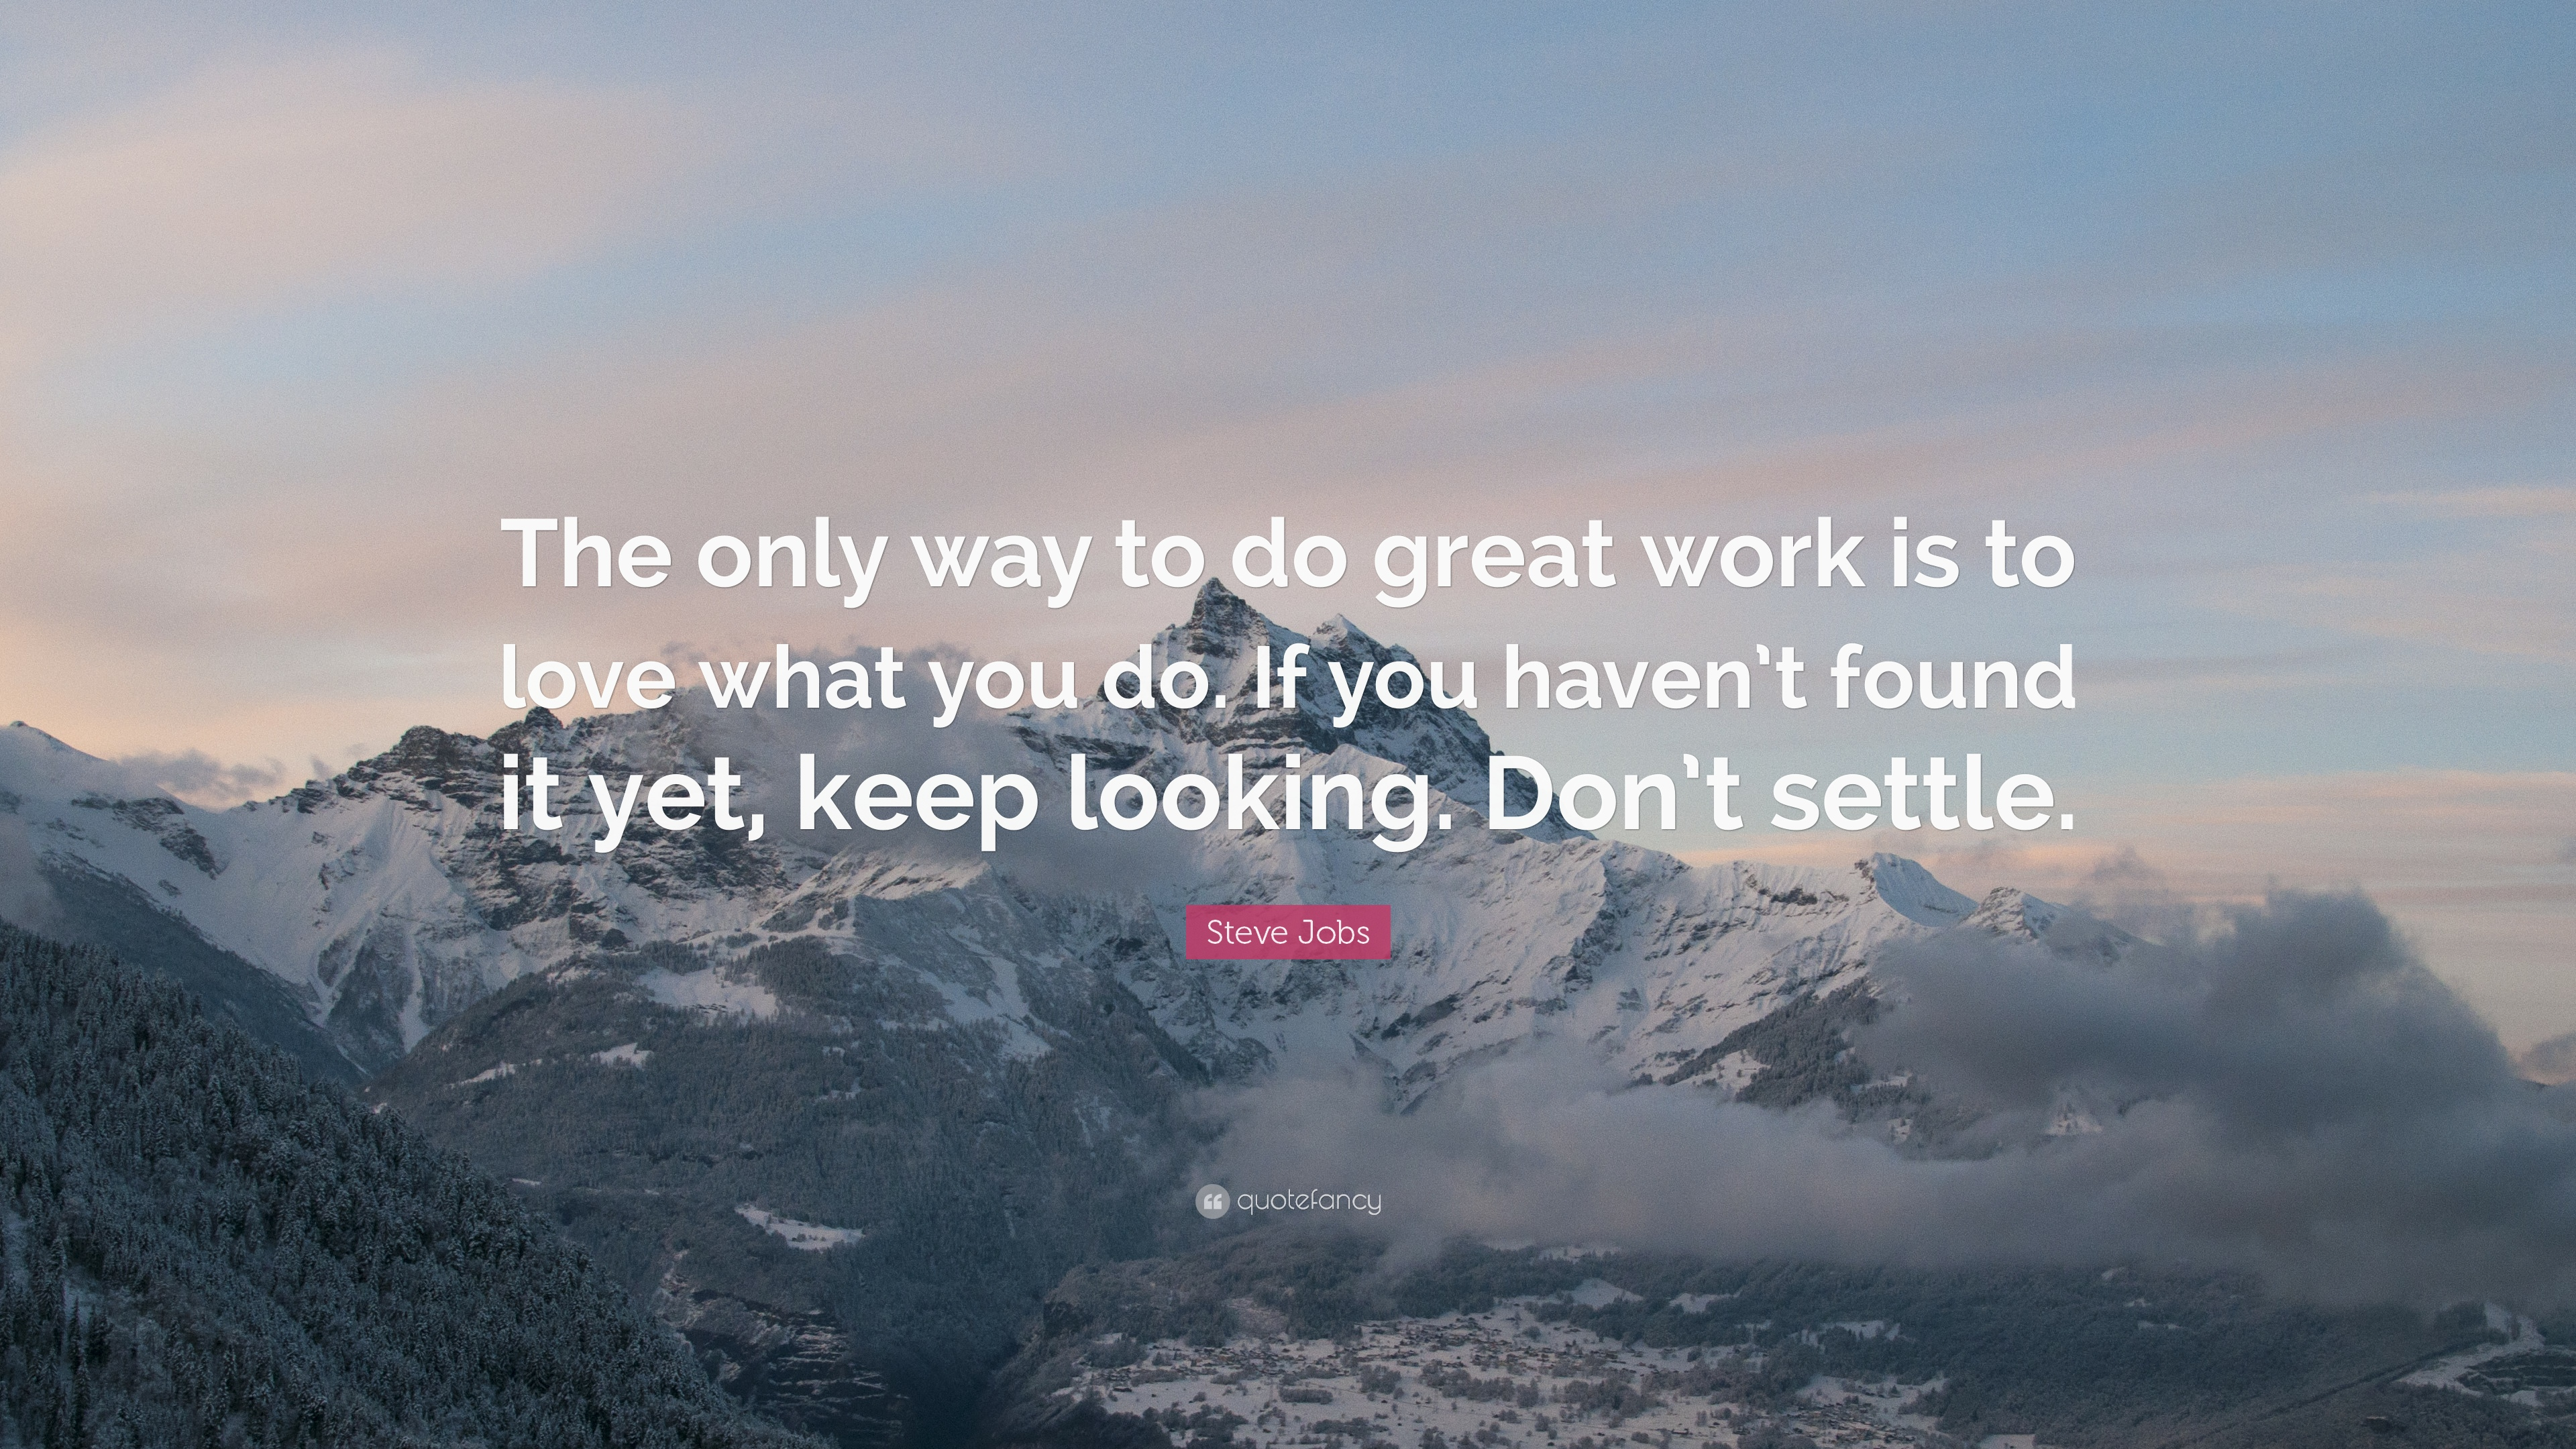 Beautiful Steve Jobs Quote: U201cThe Only Way To Do Great Work Is To Love What